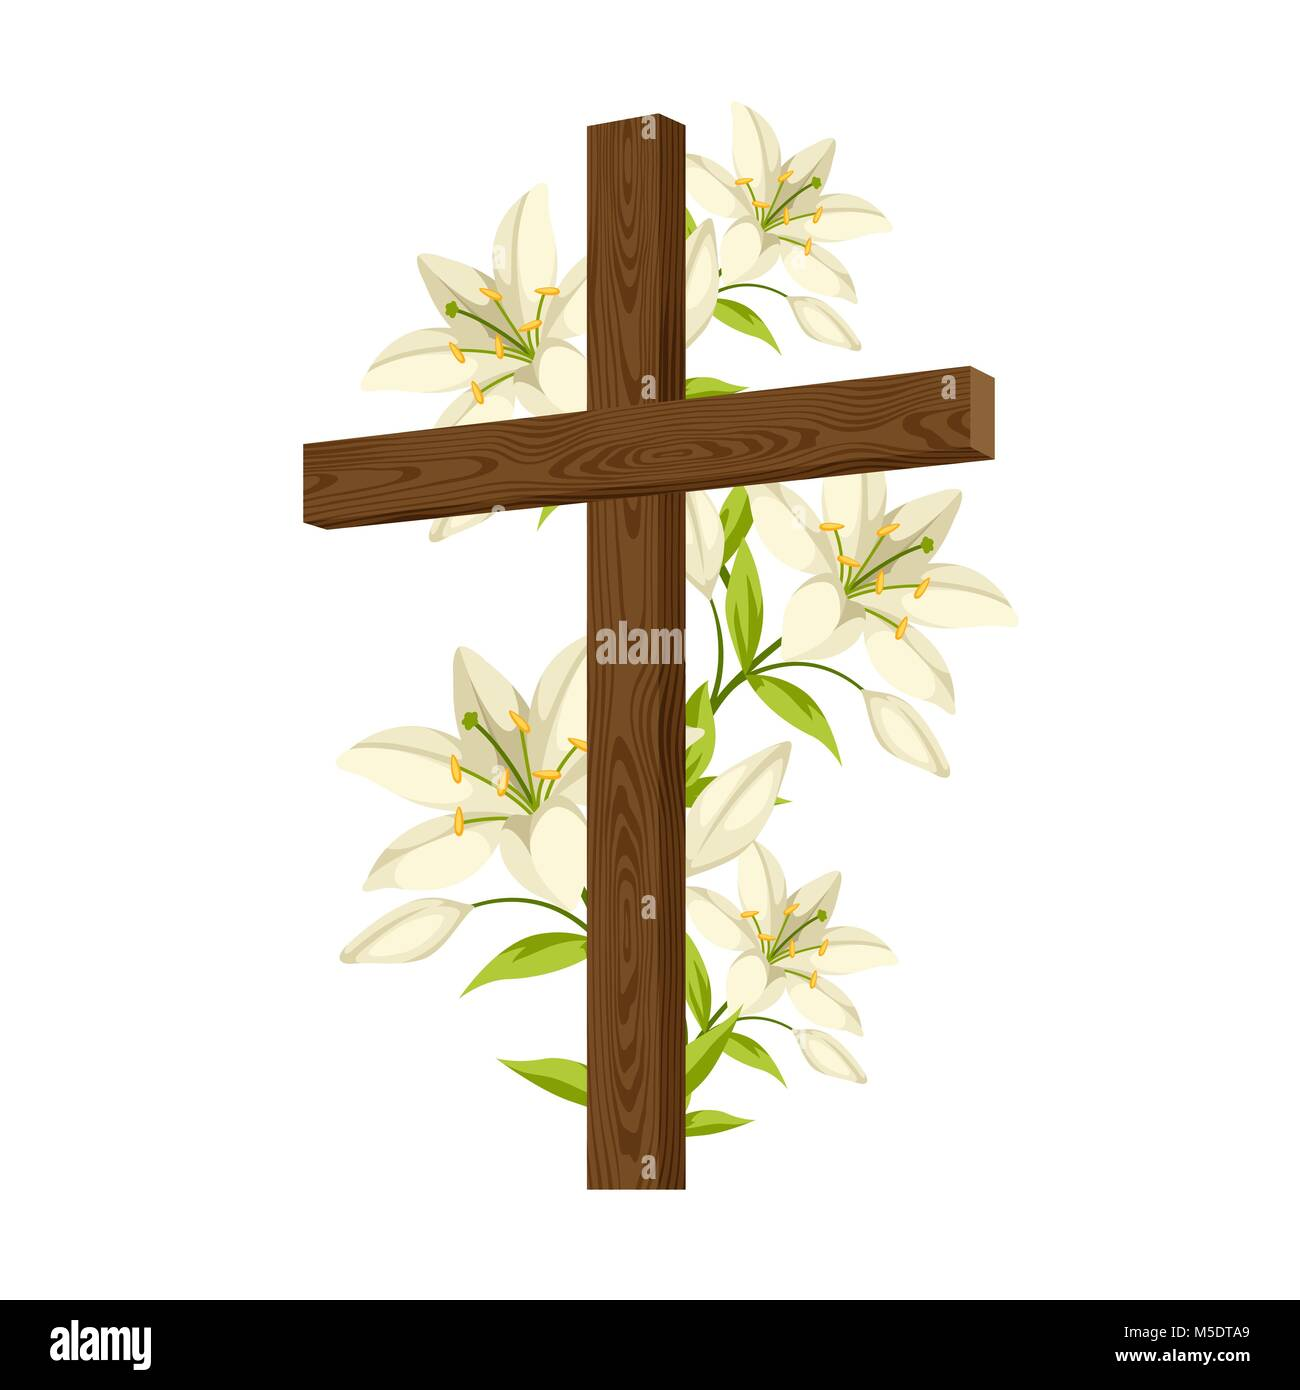 Silhouette Of Wooden Cross With Lilies Happy Easter Concept Stock